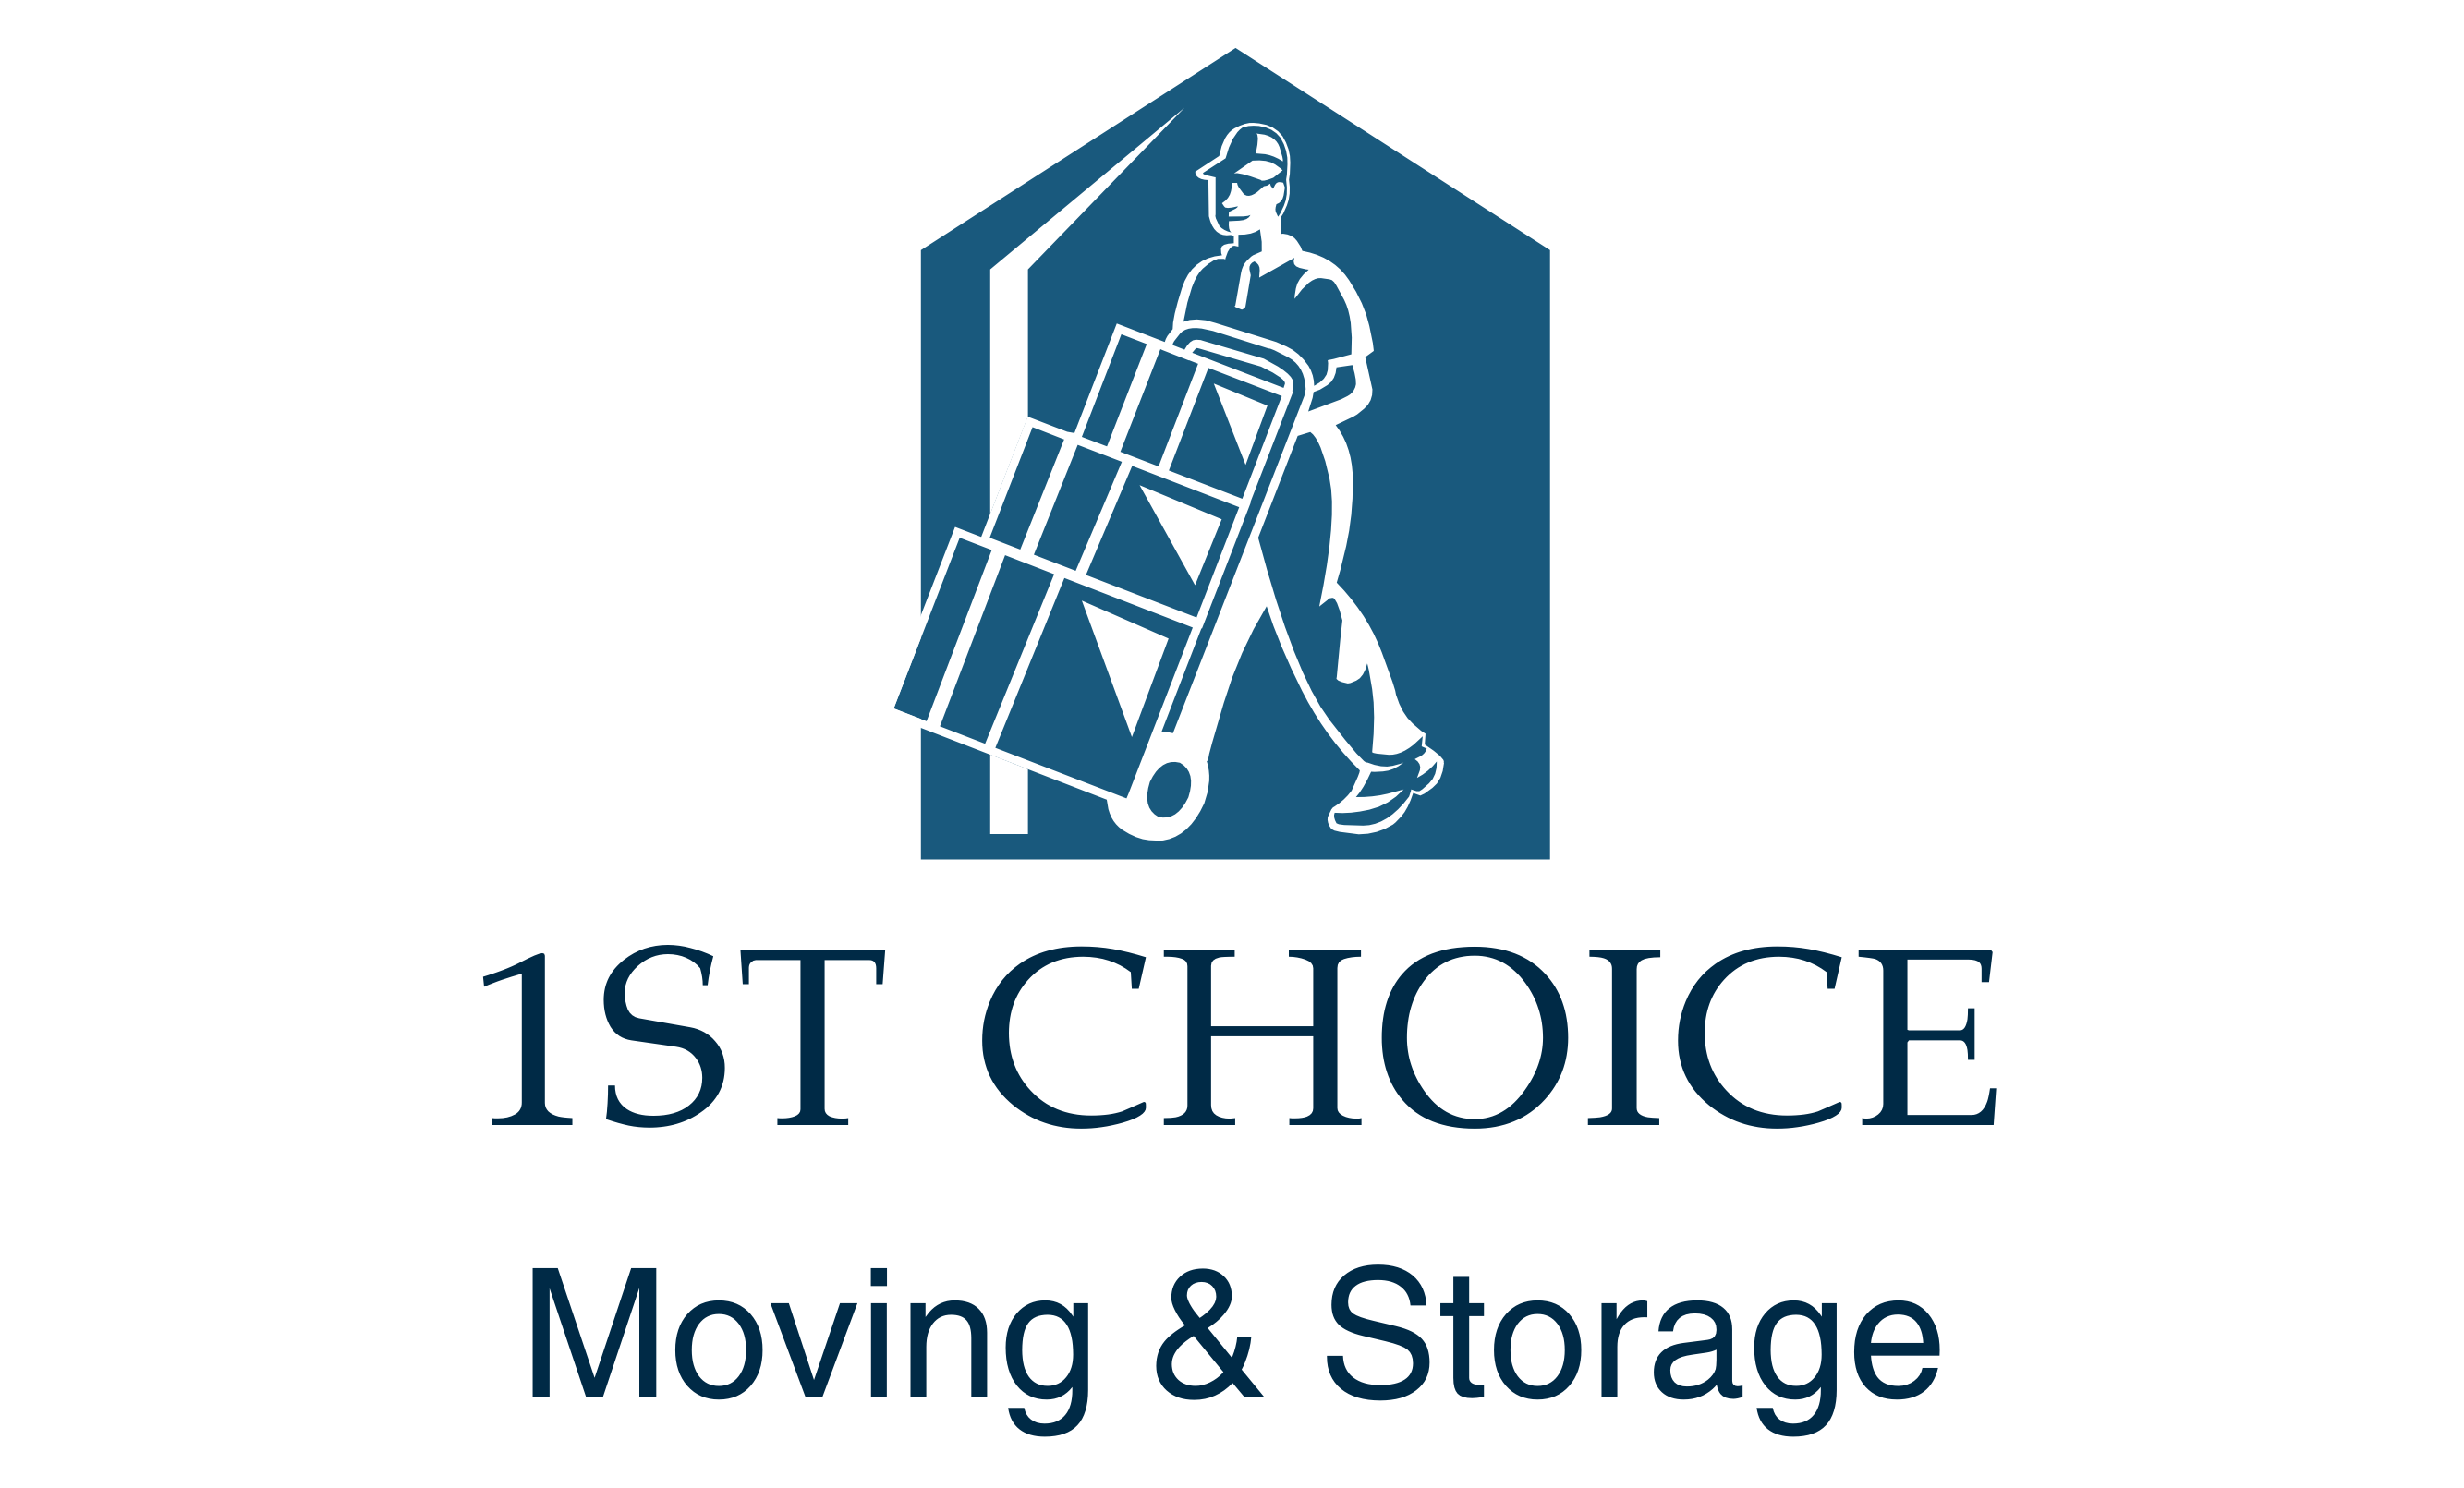 1St Choice Movers Image 1St Choice Movers Photo 2 ...